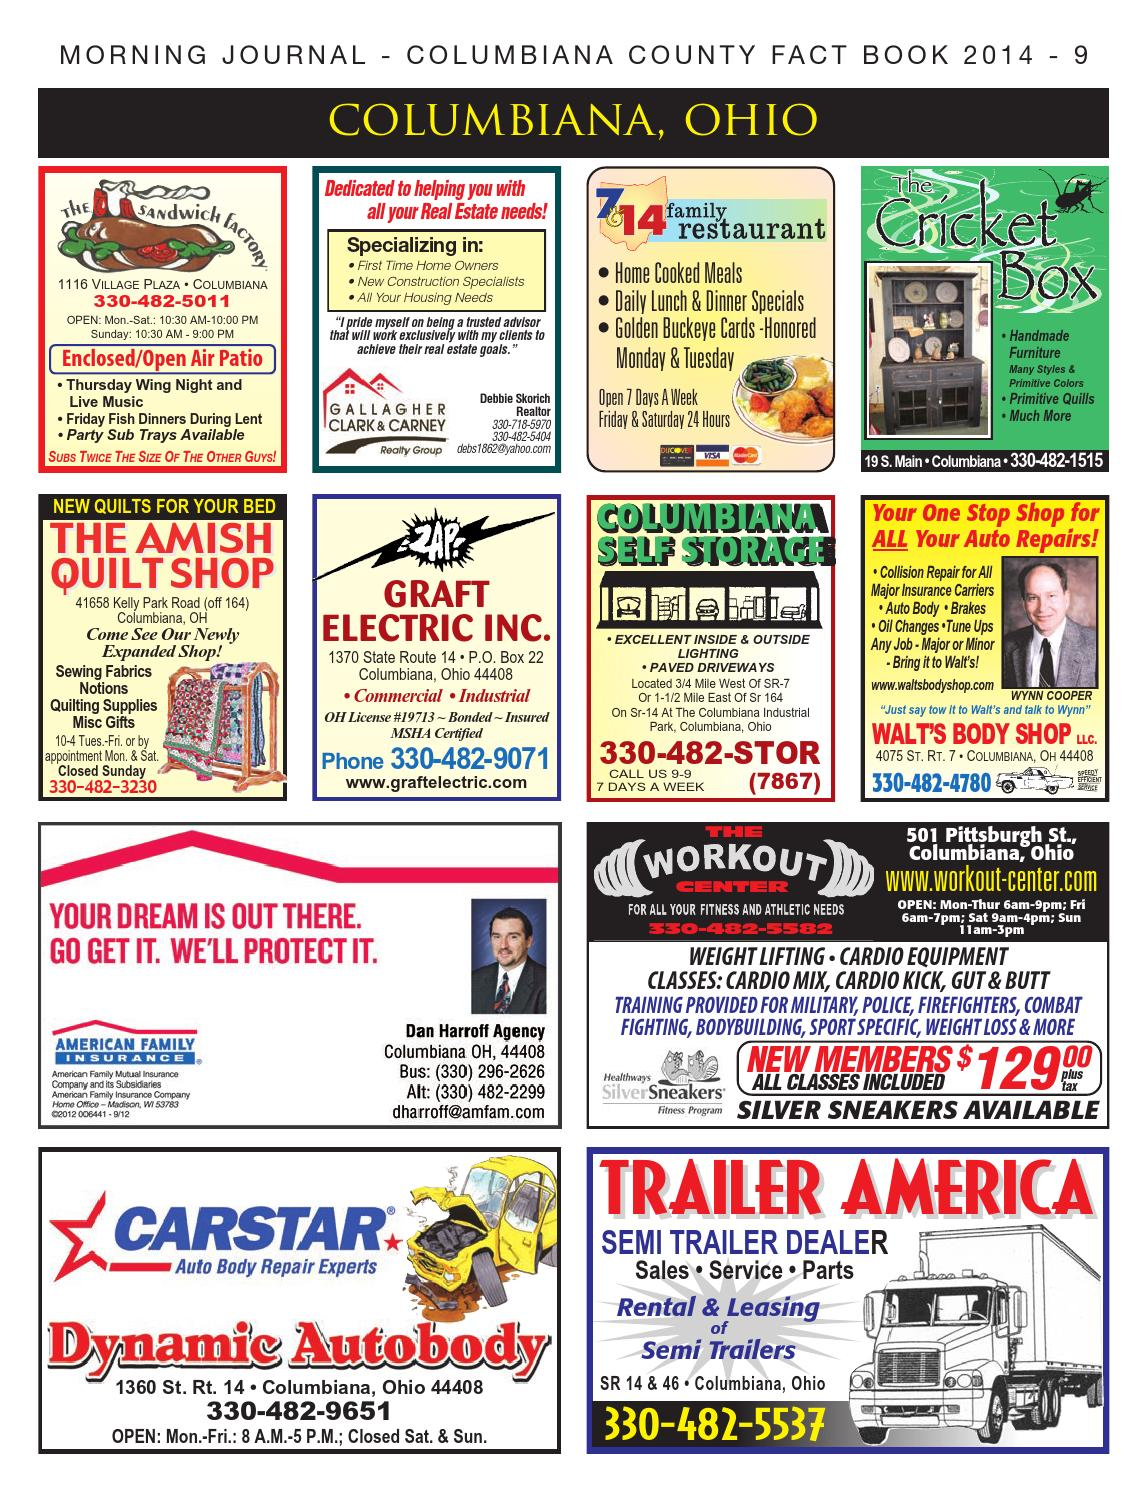 Morning Journal - Columbiana County Fact Book 2014 by